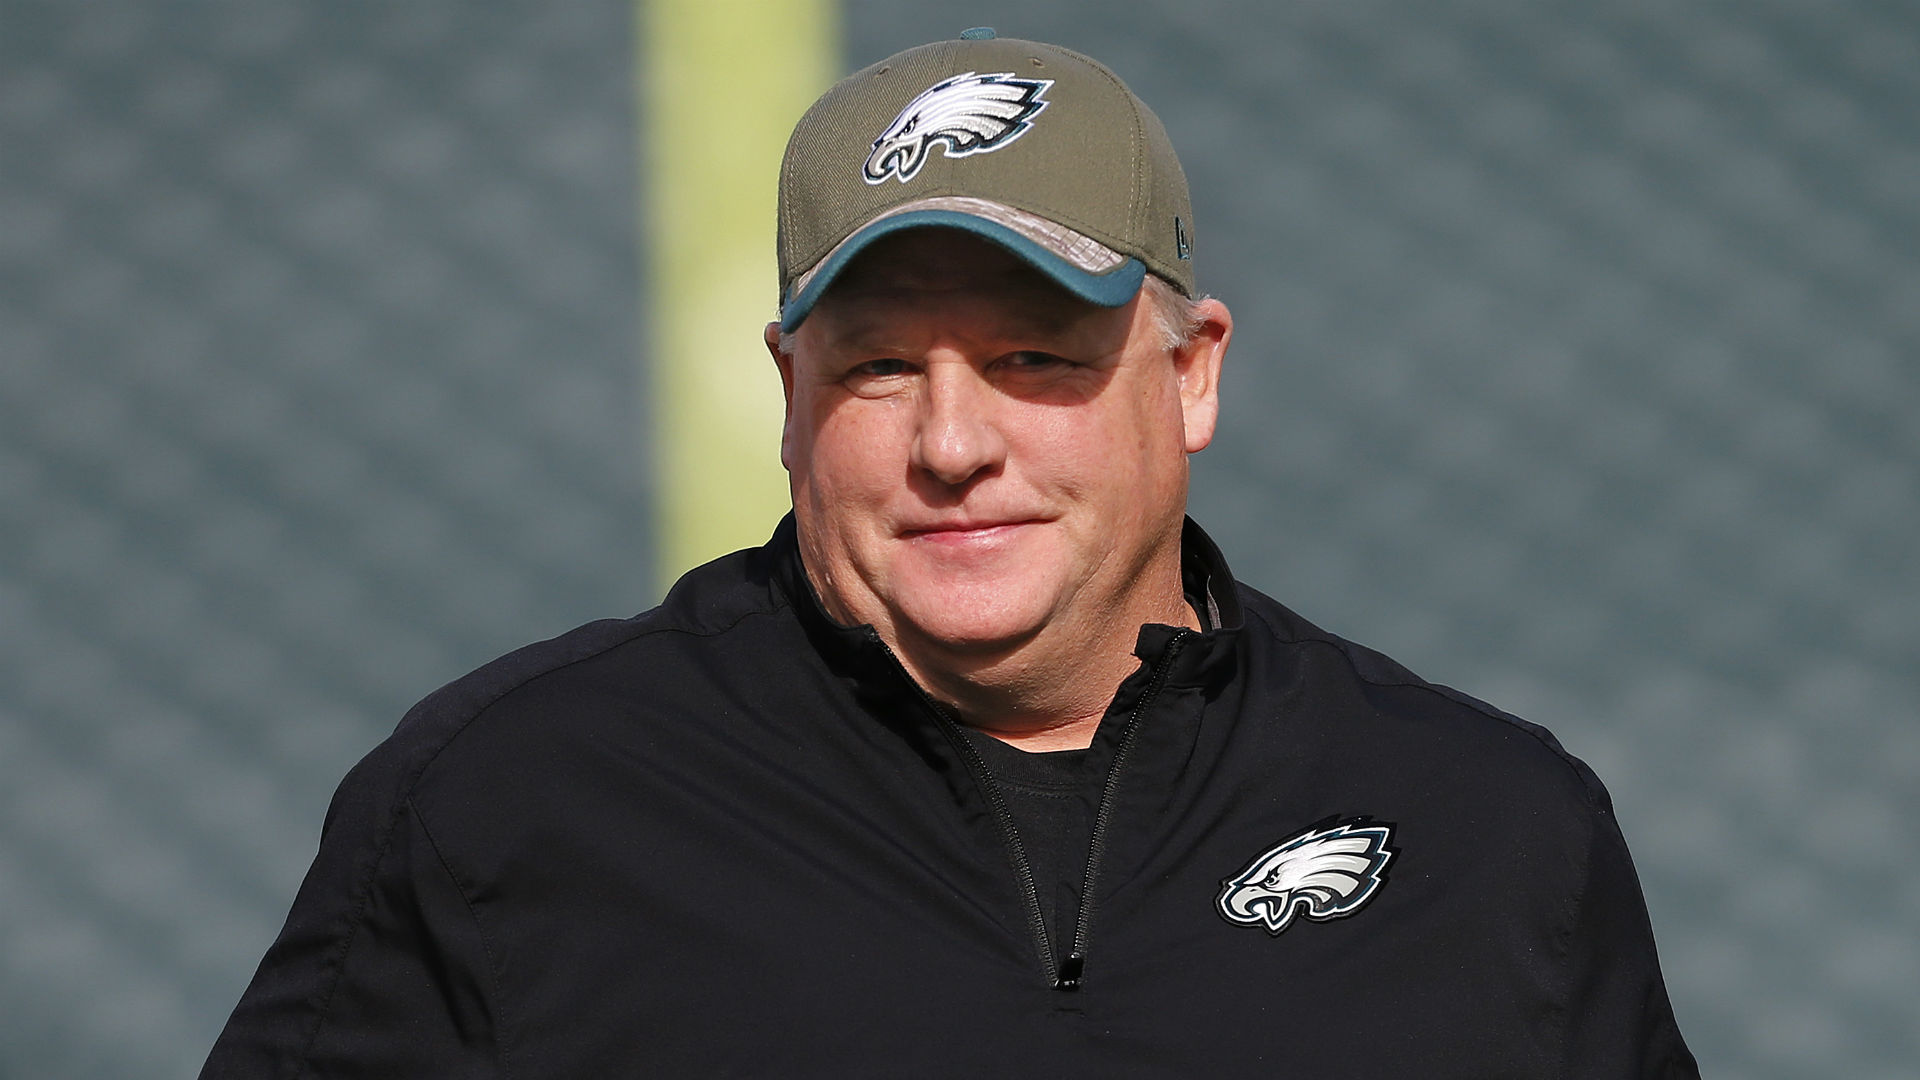 Chip Kelly says Riley Cooper incident 'could be' playing into racism claims